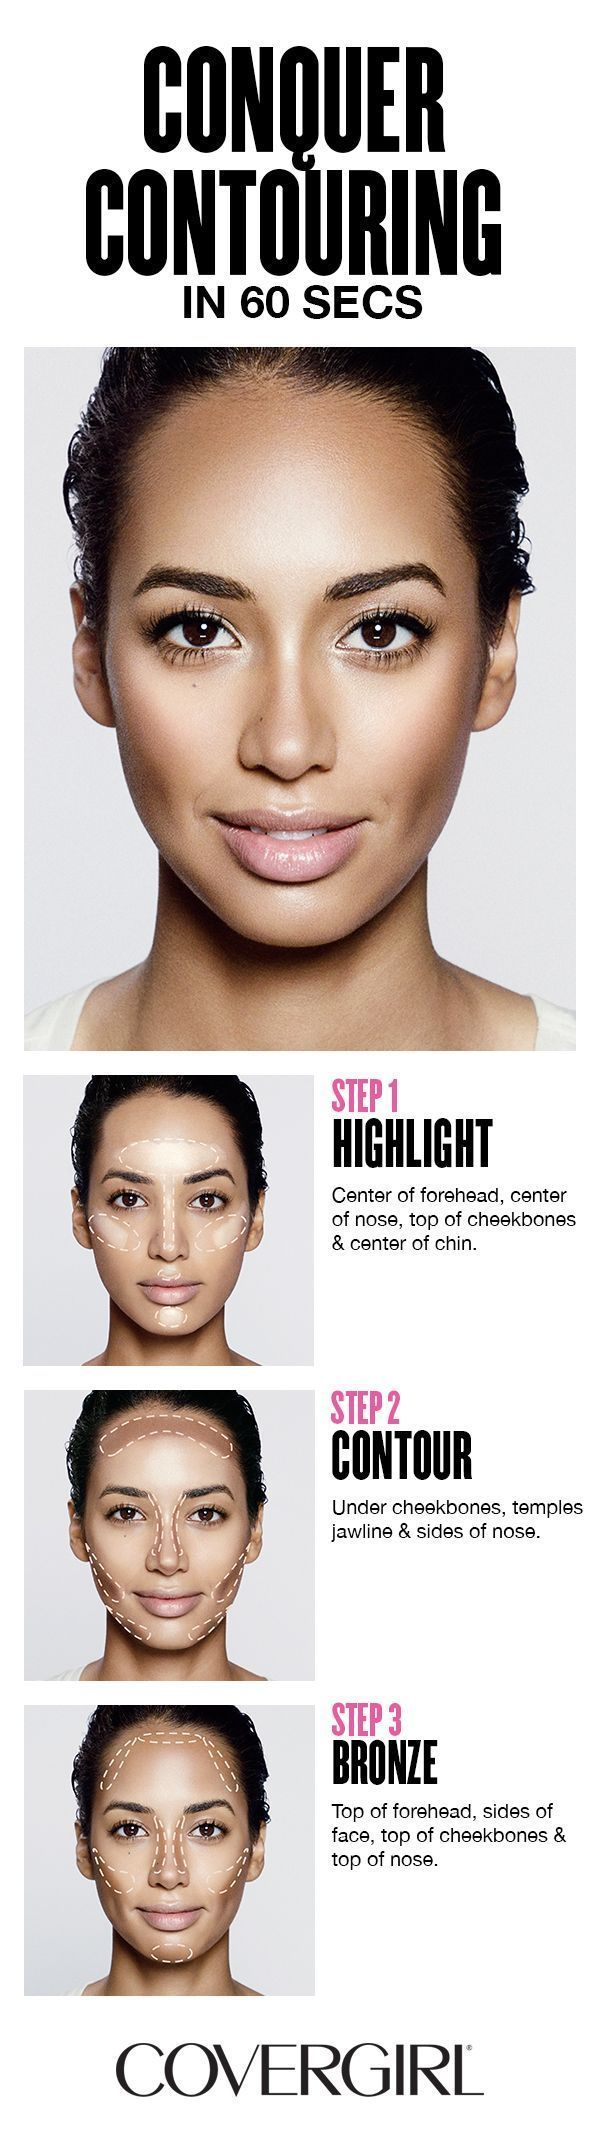 Contour your face in 60 seconds! Follow COVERGIRLS stepby